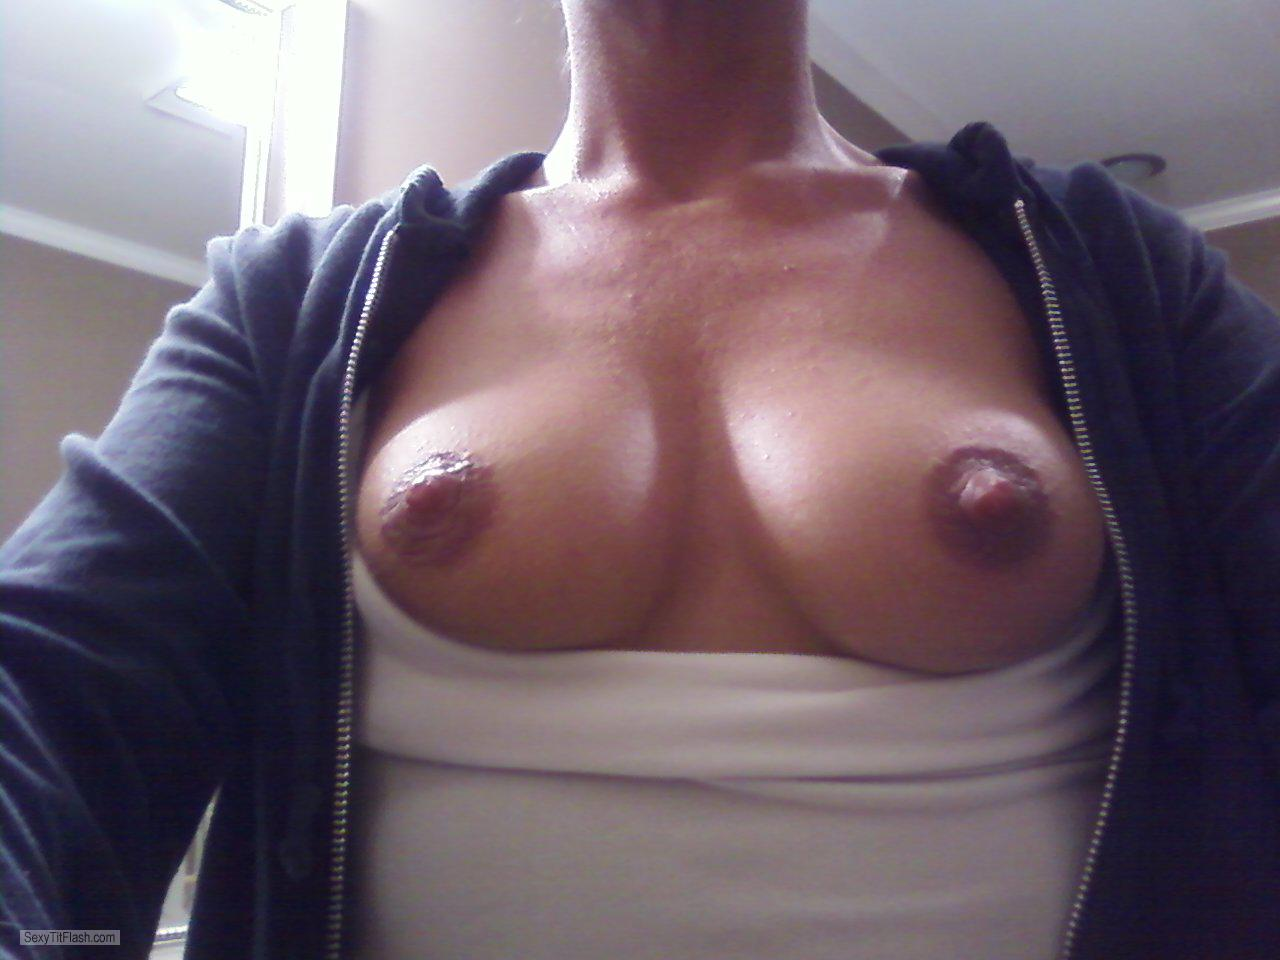 Tit Flash: Wife's Very Small Tits (Selfie) - Hotwife21 from United States